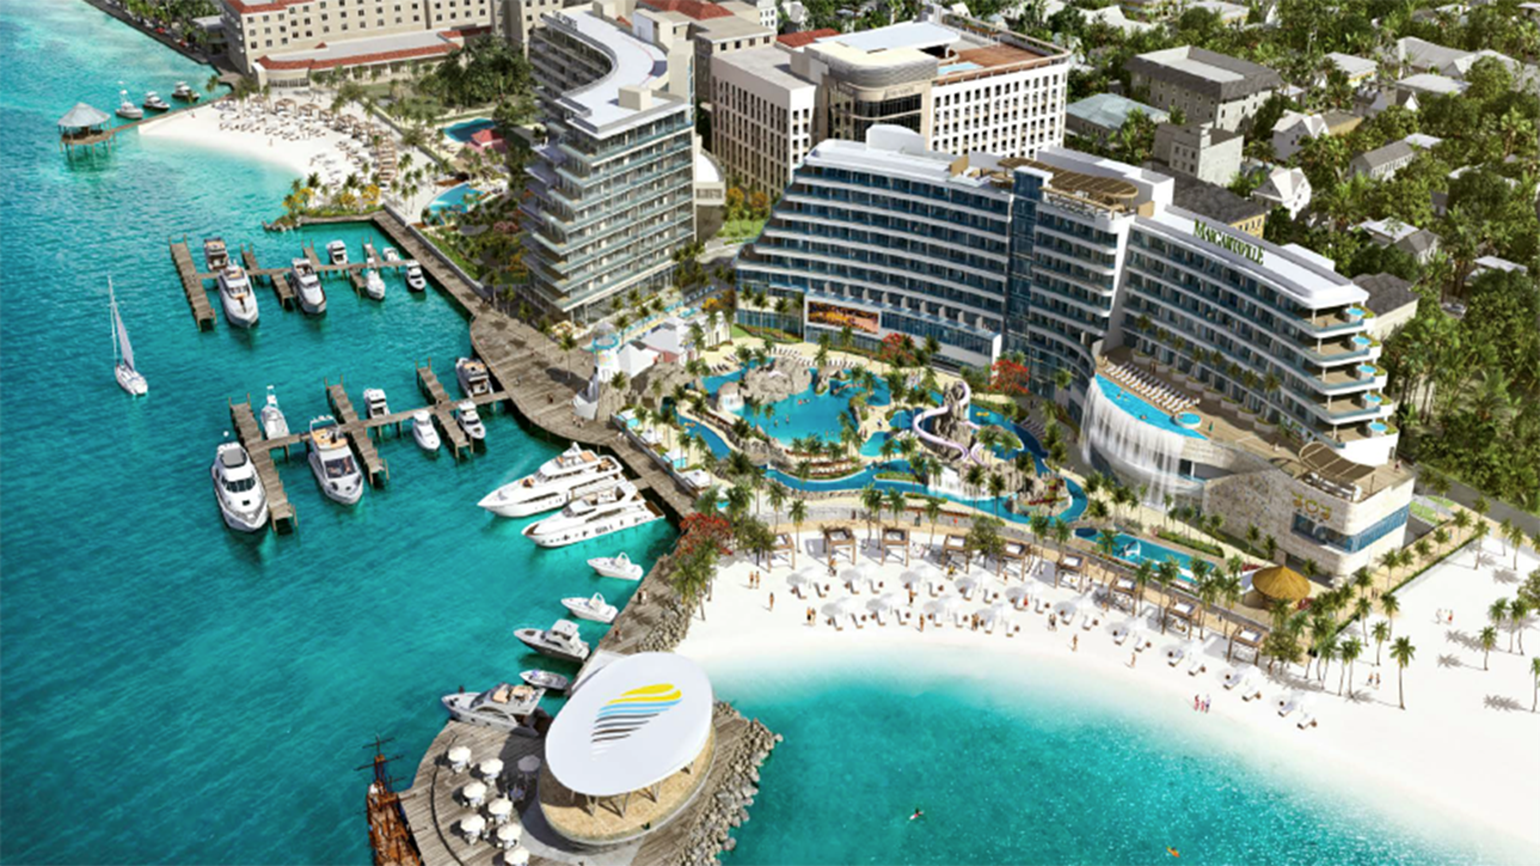 Margaritaville resort under construction in Nassau